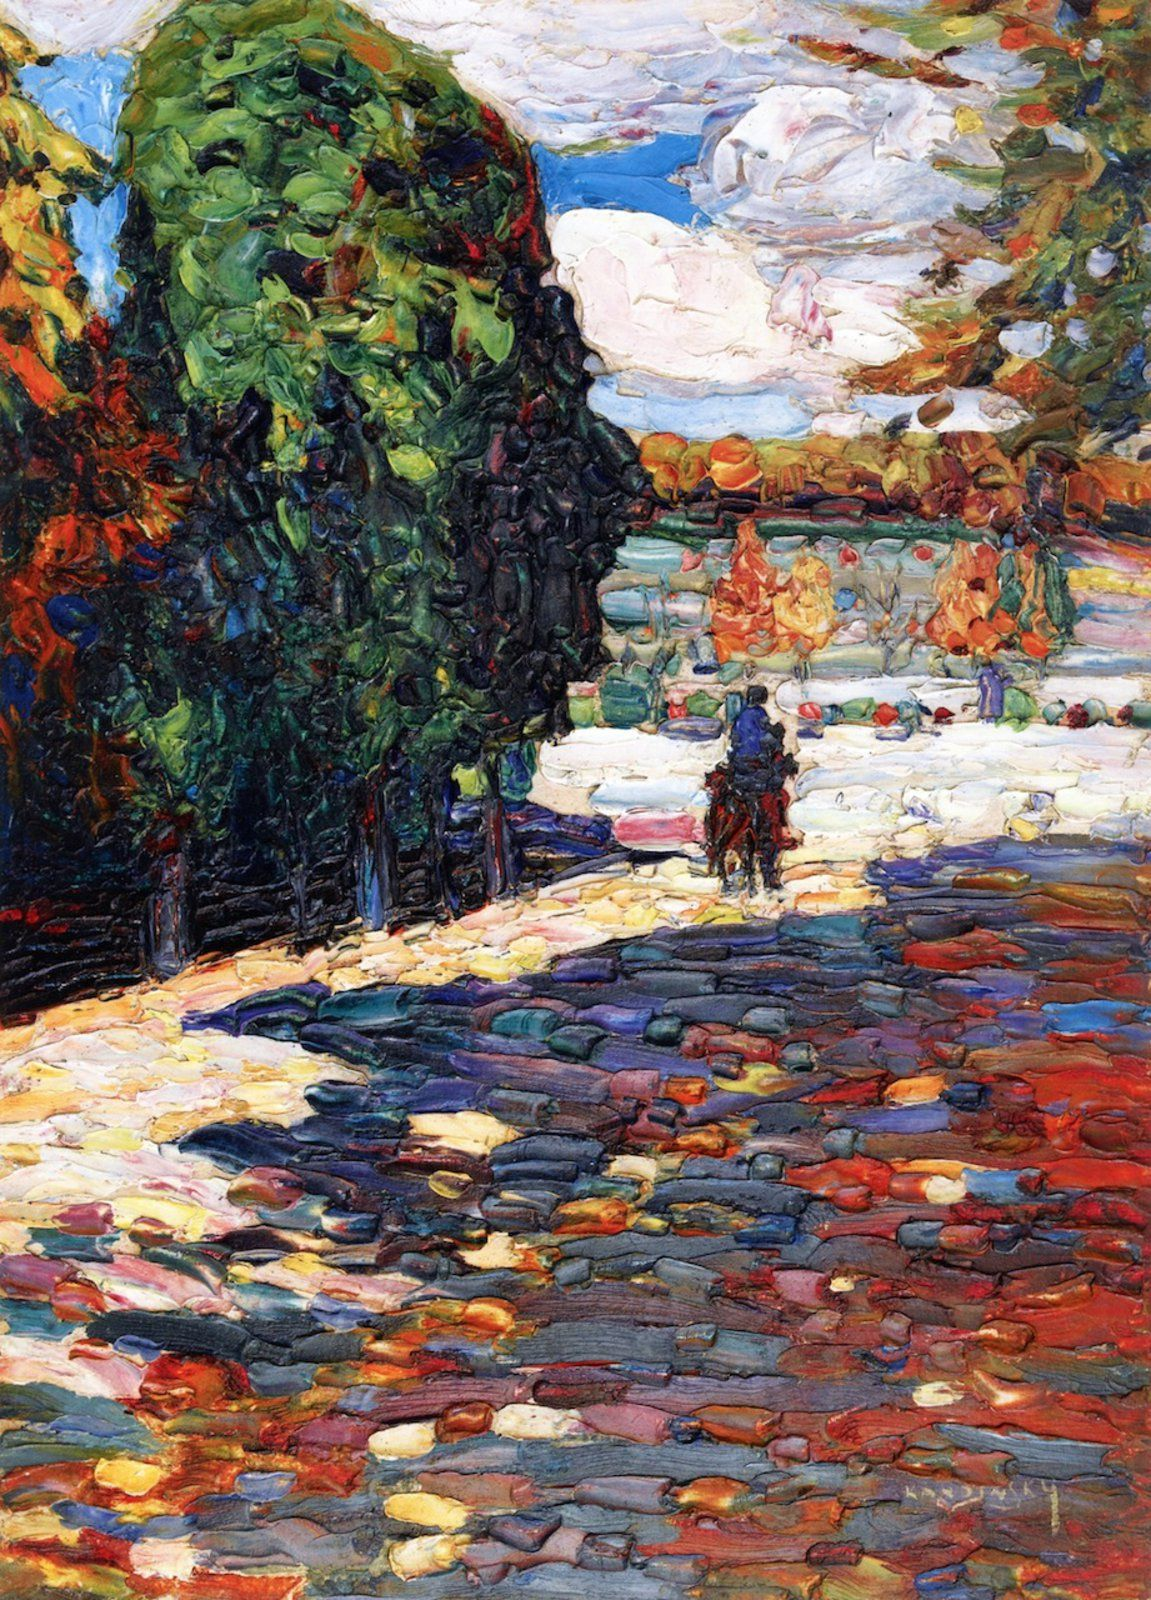 Wassily Kandinsky (Russian; Expressionism, 1866-1944): St. Cloud Park with Horseman (Park von St. Cloud mit Reiter), 1906. Oil on board.